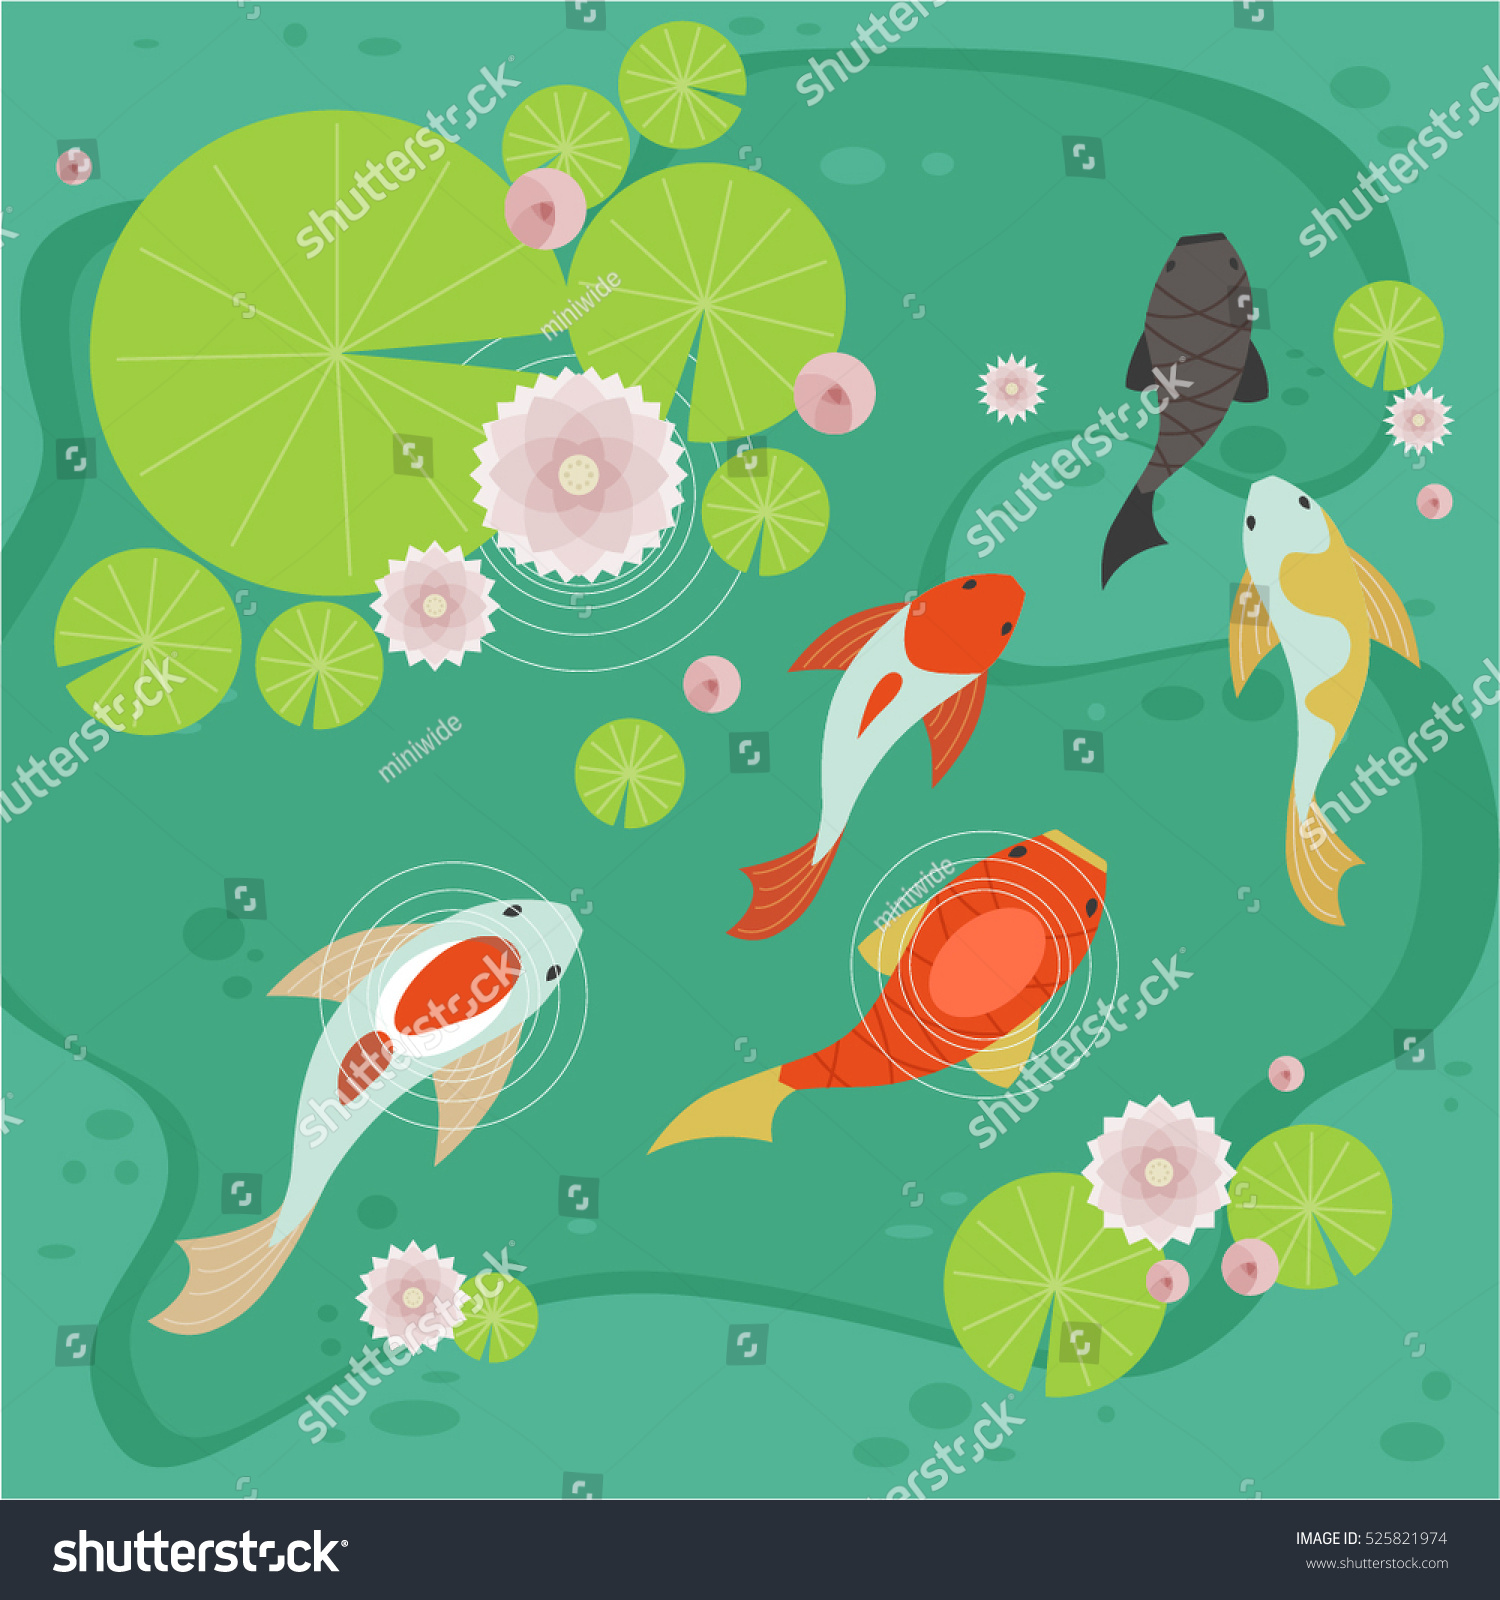 Carp pond vector illustration flat design 525821974 for Carp pond design